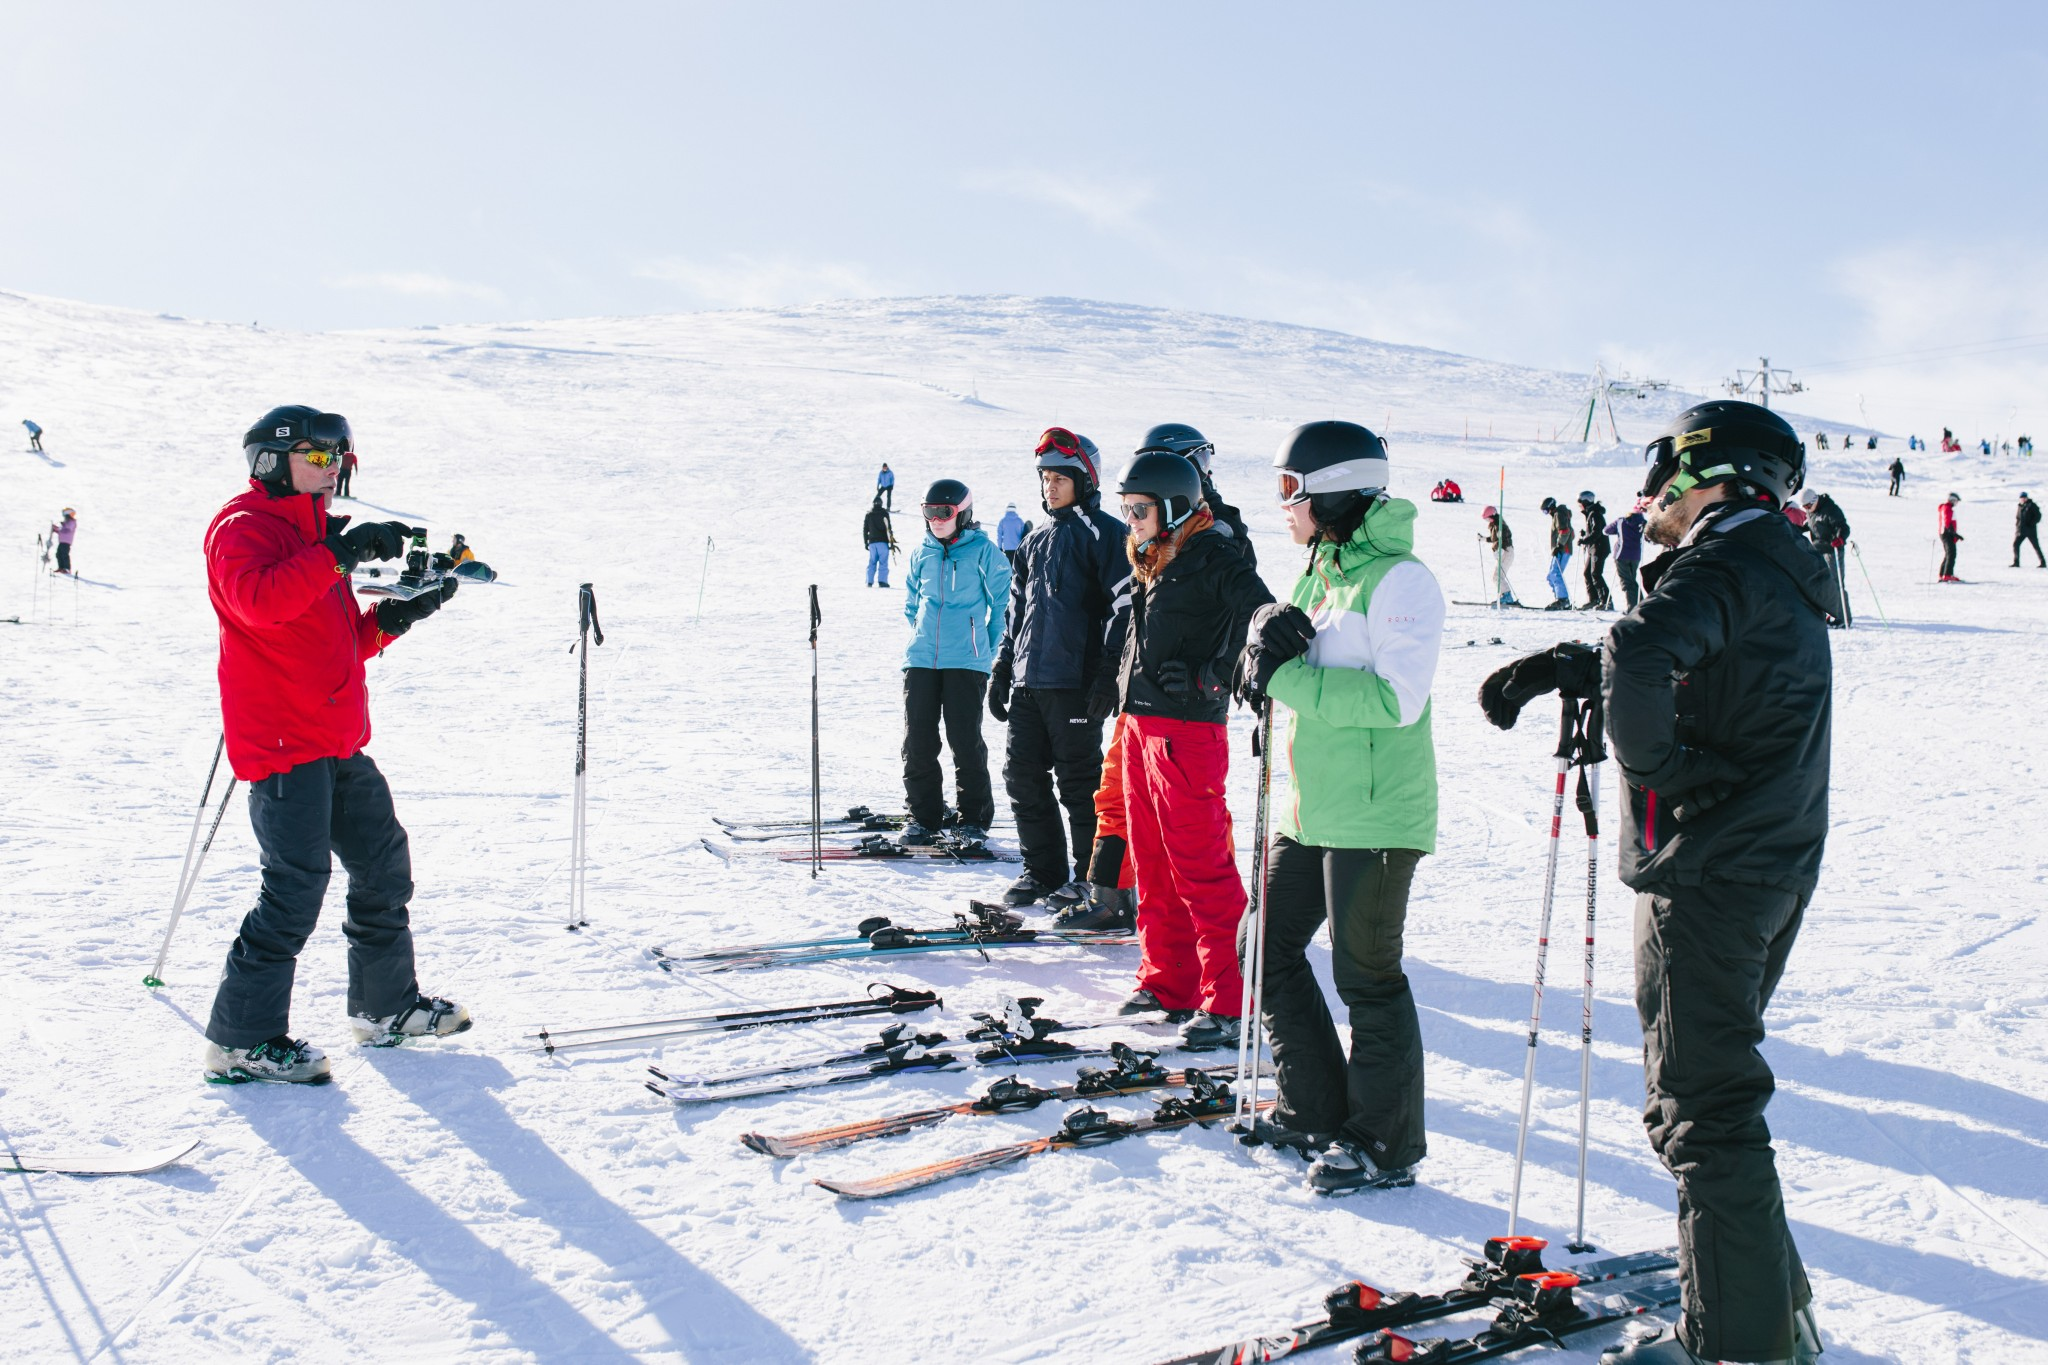 Skiiing and Snowboarding at Cairngorm Mountain